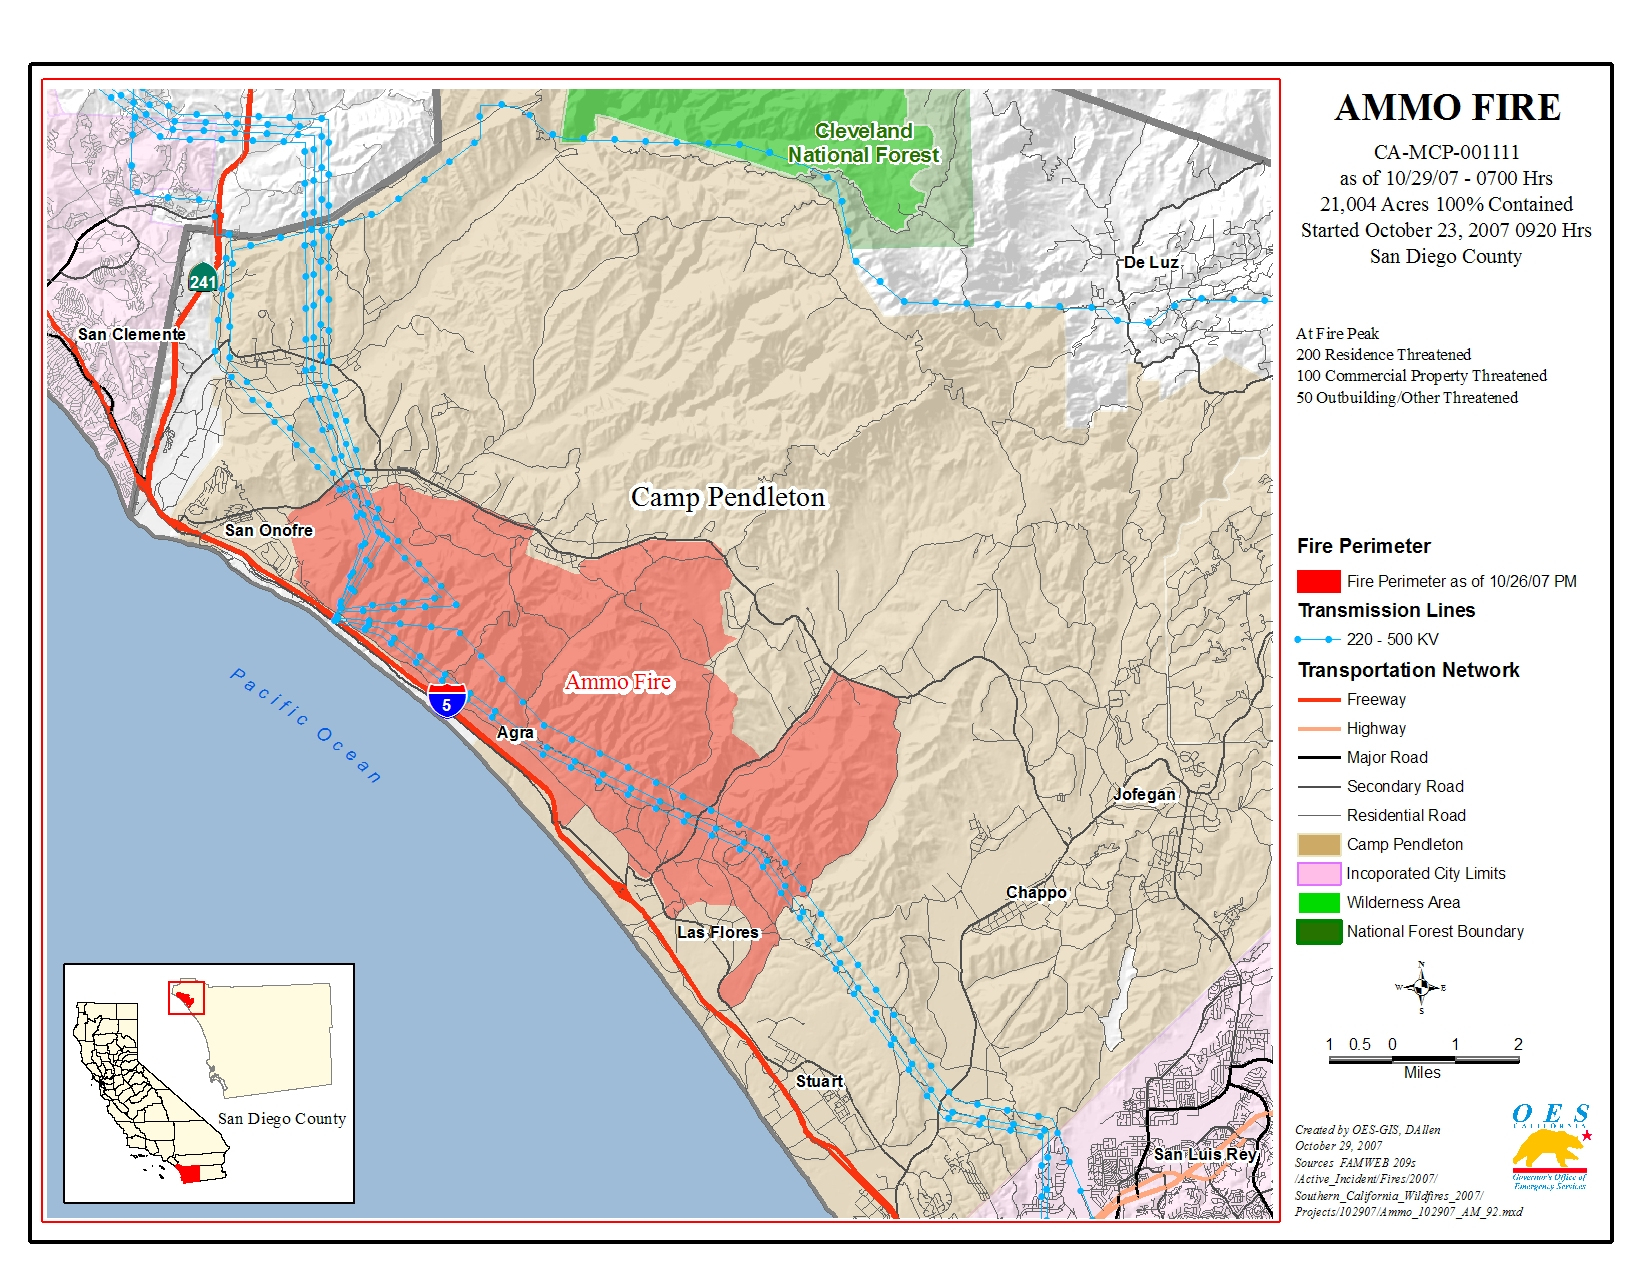 Ca Oes, Fire - Socal 2007 - Southern California Fire Map